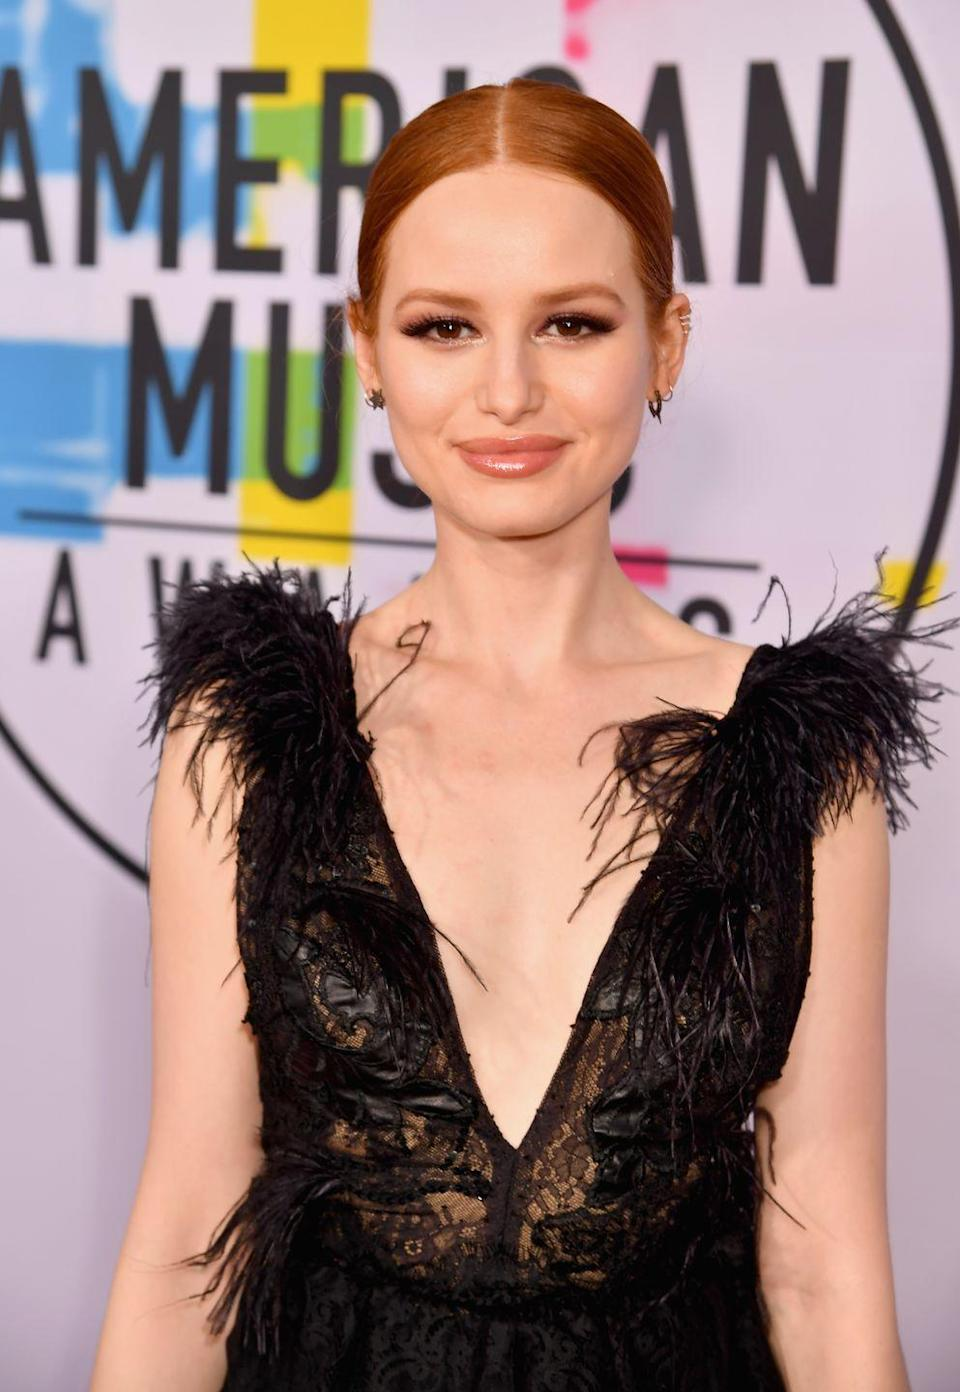 """<p>Before taking on the role of Cheryl Blossom on <em>Riverdale</em>, Madelaine worked <a href=""""https://www.cosmopolitan.com/entertainment/celebs/a19831166/madelaine-petsch-career-how-video/"""" rel=""""nofollow noopener"""" target=""""_blank"""" data-ylk=""""slk:three different jobs"""" class=""""link rapid-noclick-resp"""">three different jobs</a>. She opened a coffee shop in the morning, assisted a photographer, and hosted at a Beverly Hills restaurant. On top of all of that, she auditioned for roles.<br></p>"""